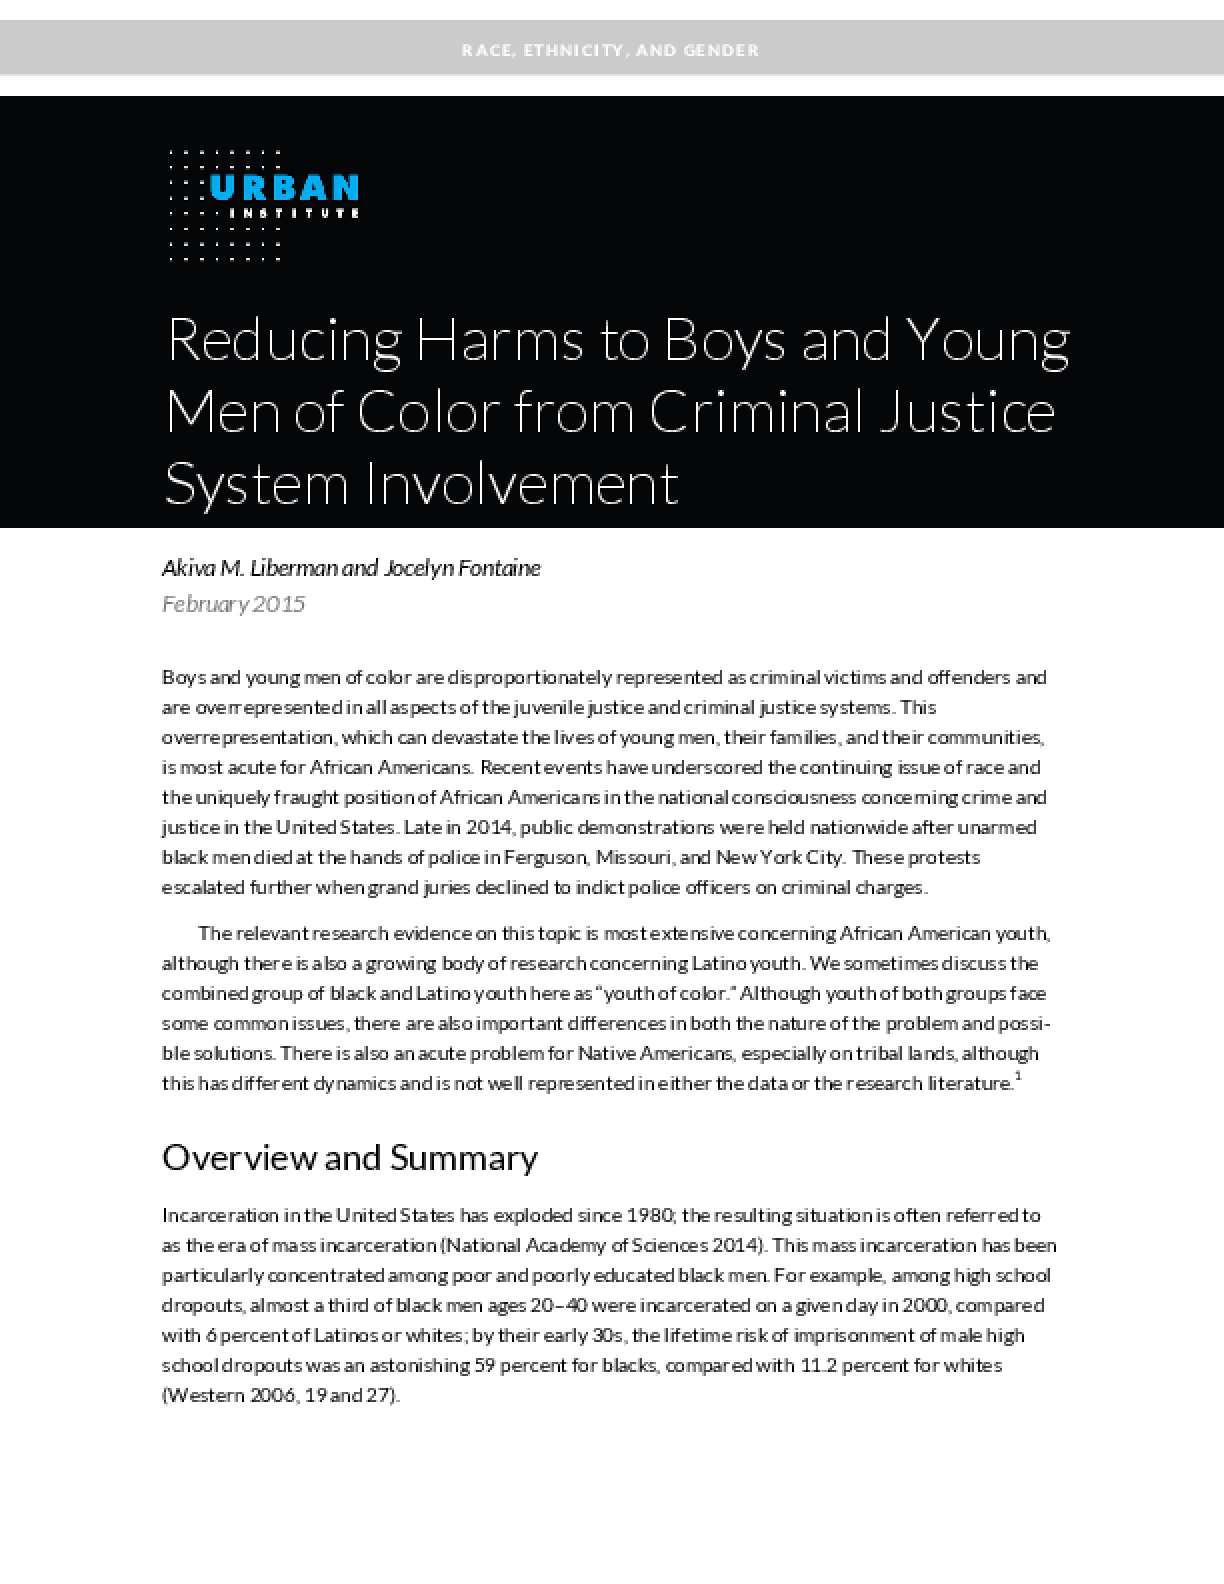 Reducing Harms to Boys and Young Men of Color from Criminal Justice System Involvement